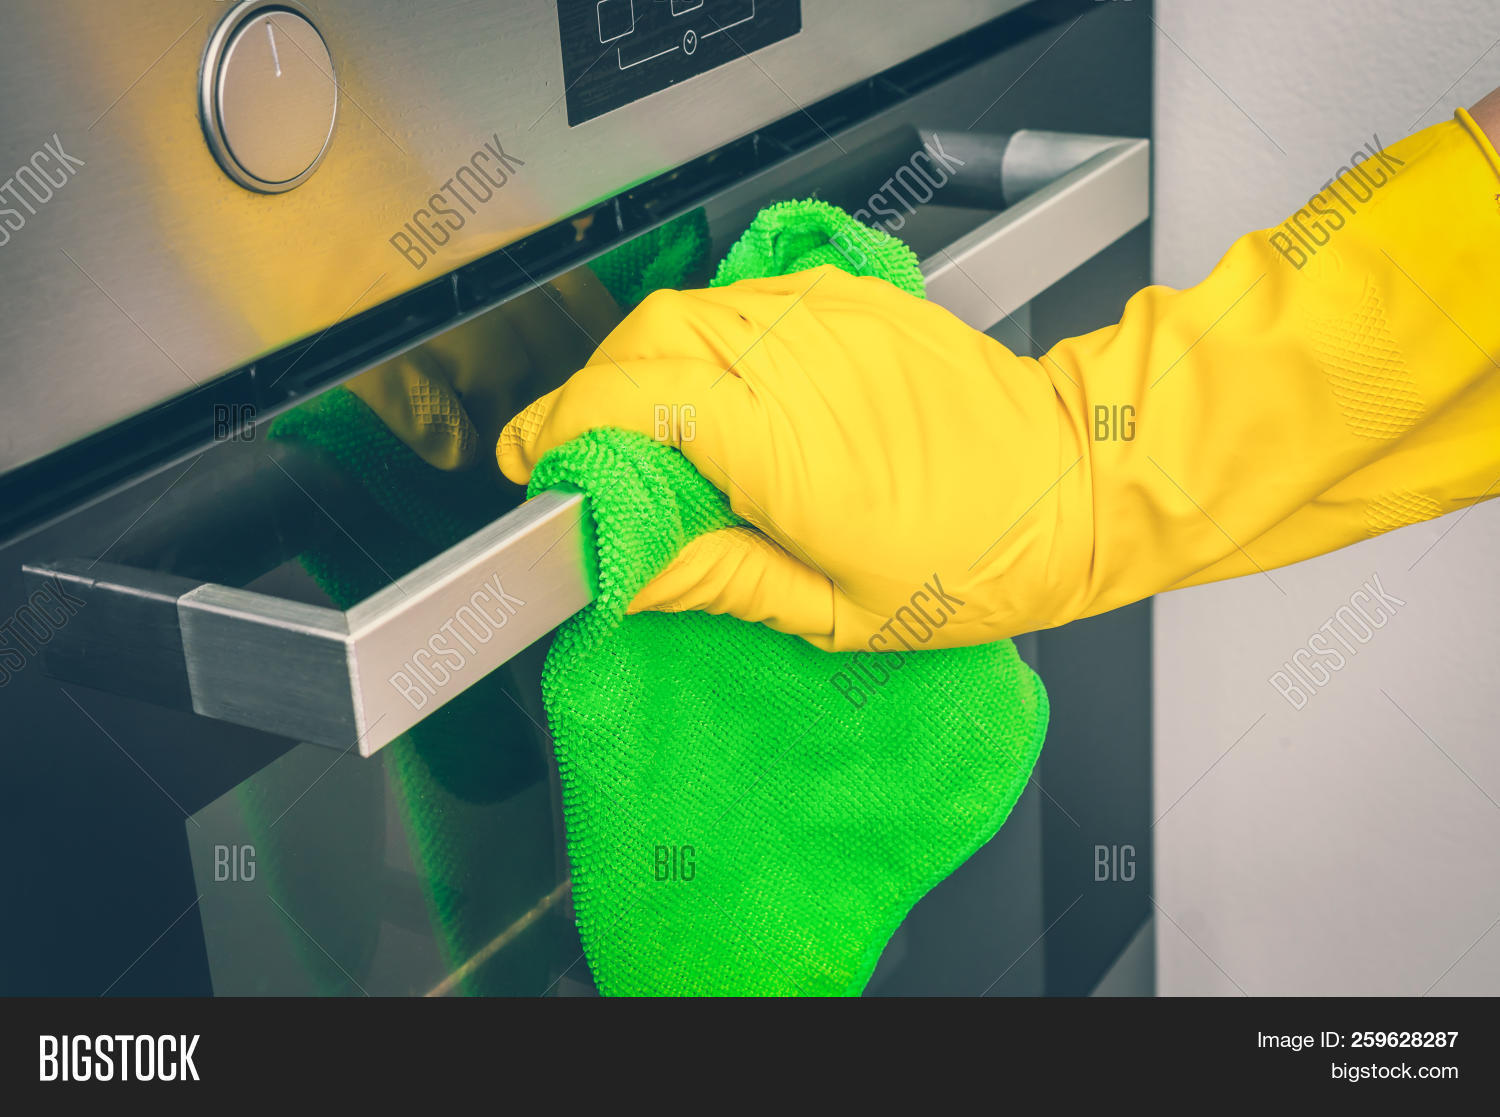 ec31df742c25d Hand In Glove With Green Rag Is Wiping Oven In Kitchen - Housework And Housekeeping  Concept